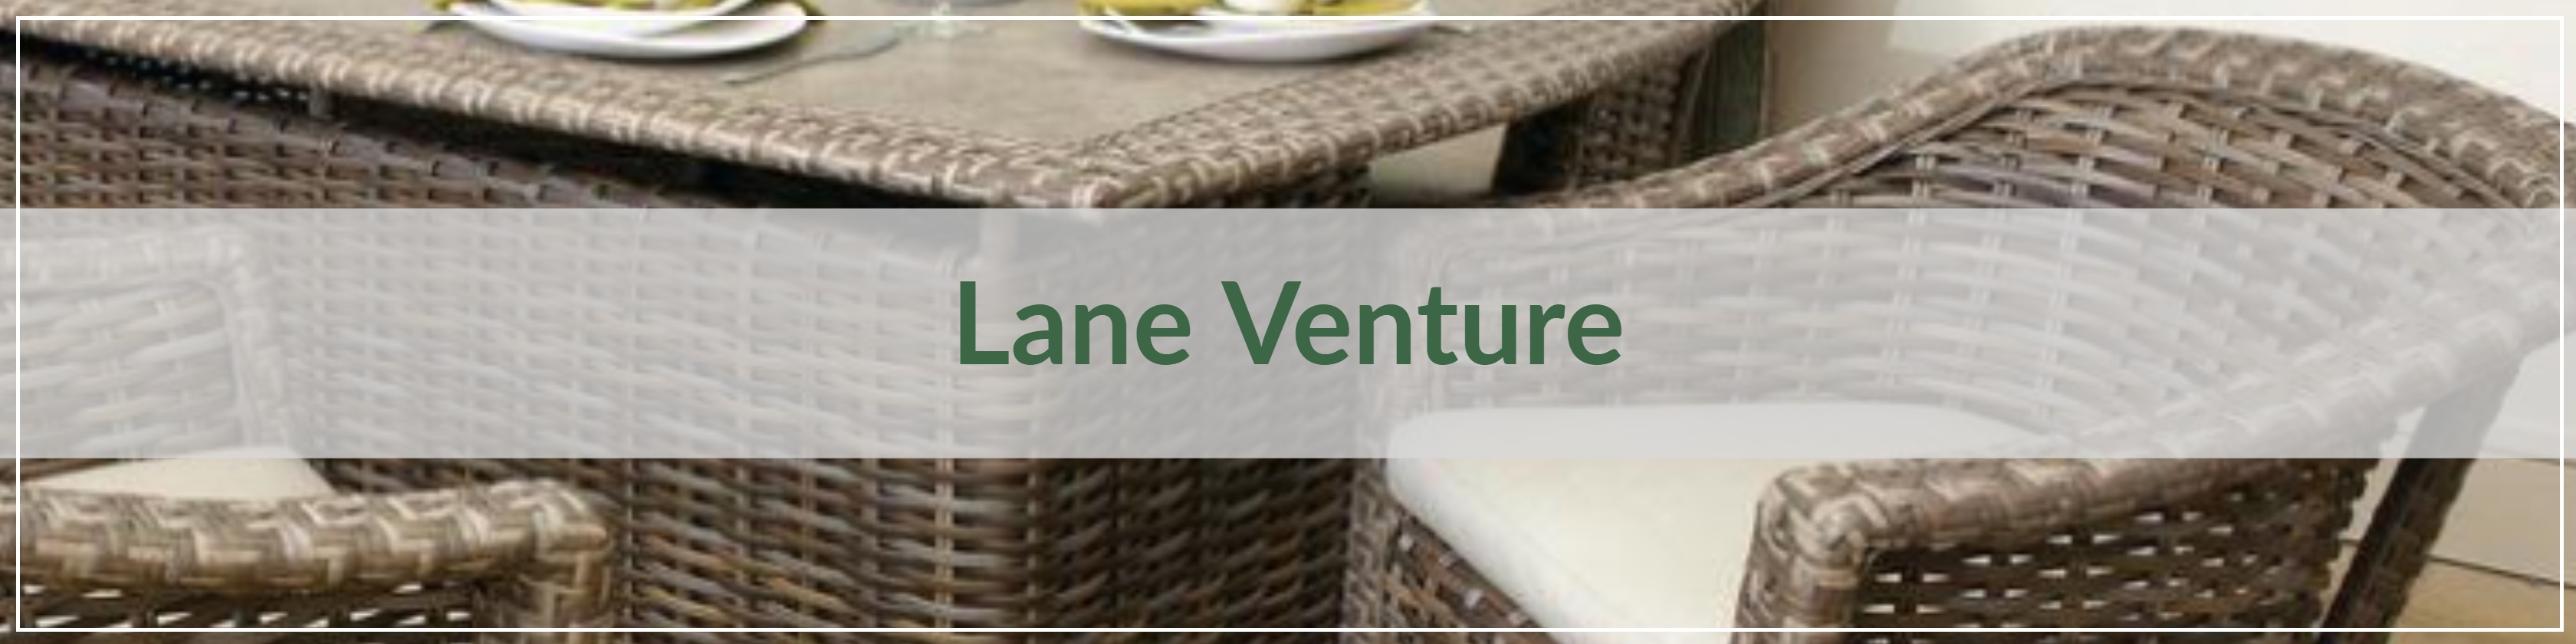 Lane Venture Resin Wicker Dining